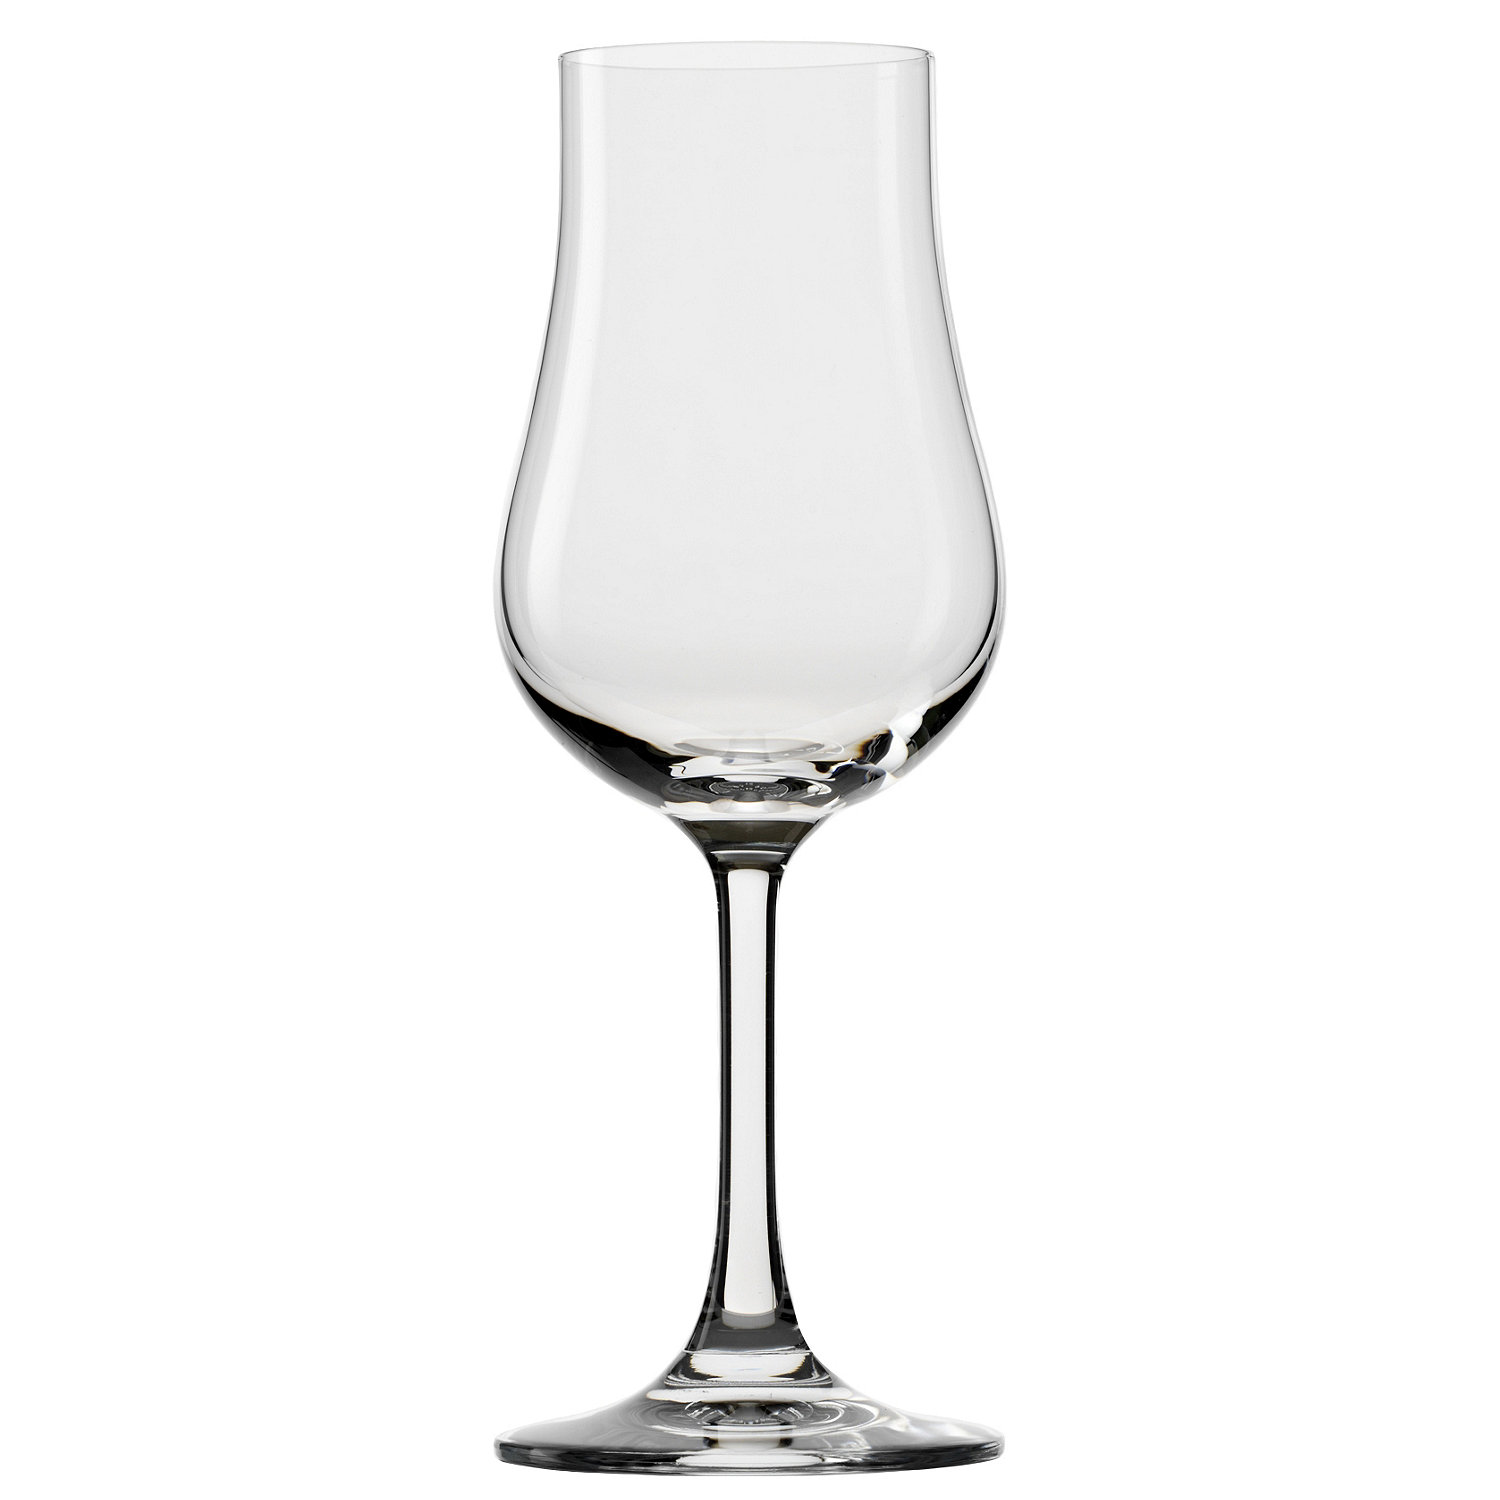 Whisky drinking laying the glass on its side for Thin stem wine glasses